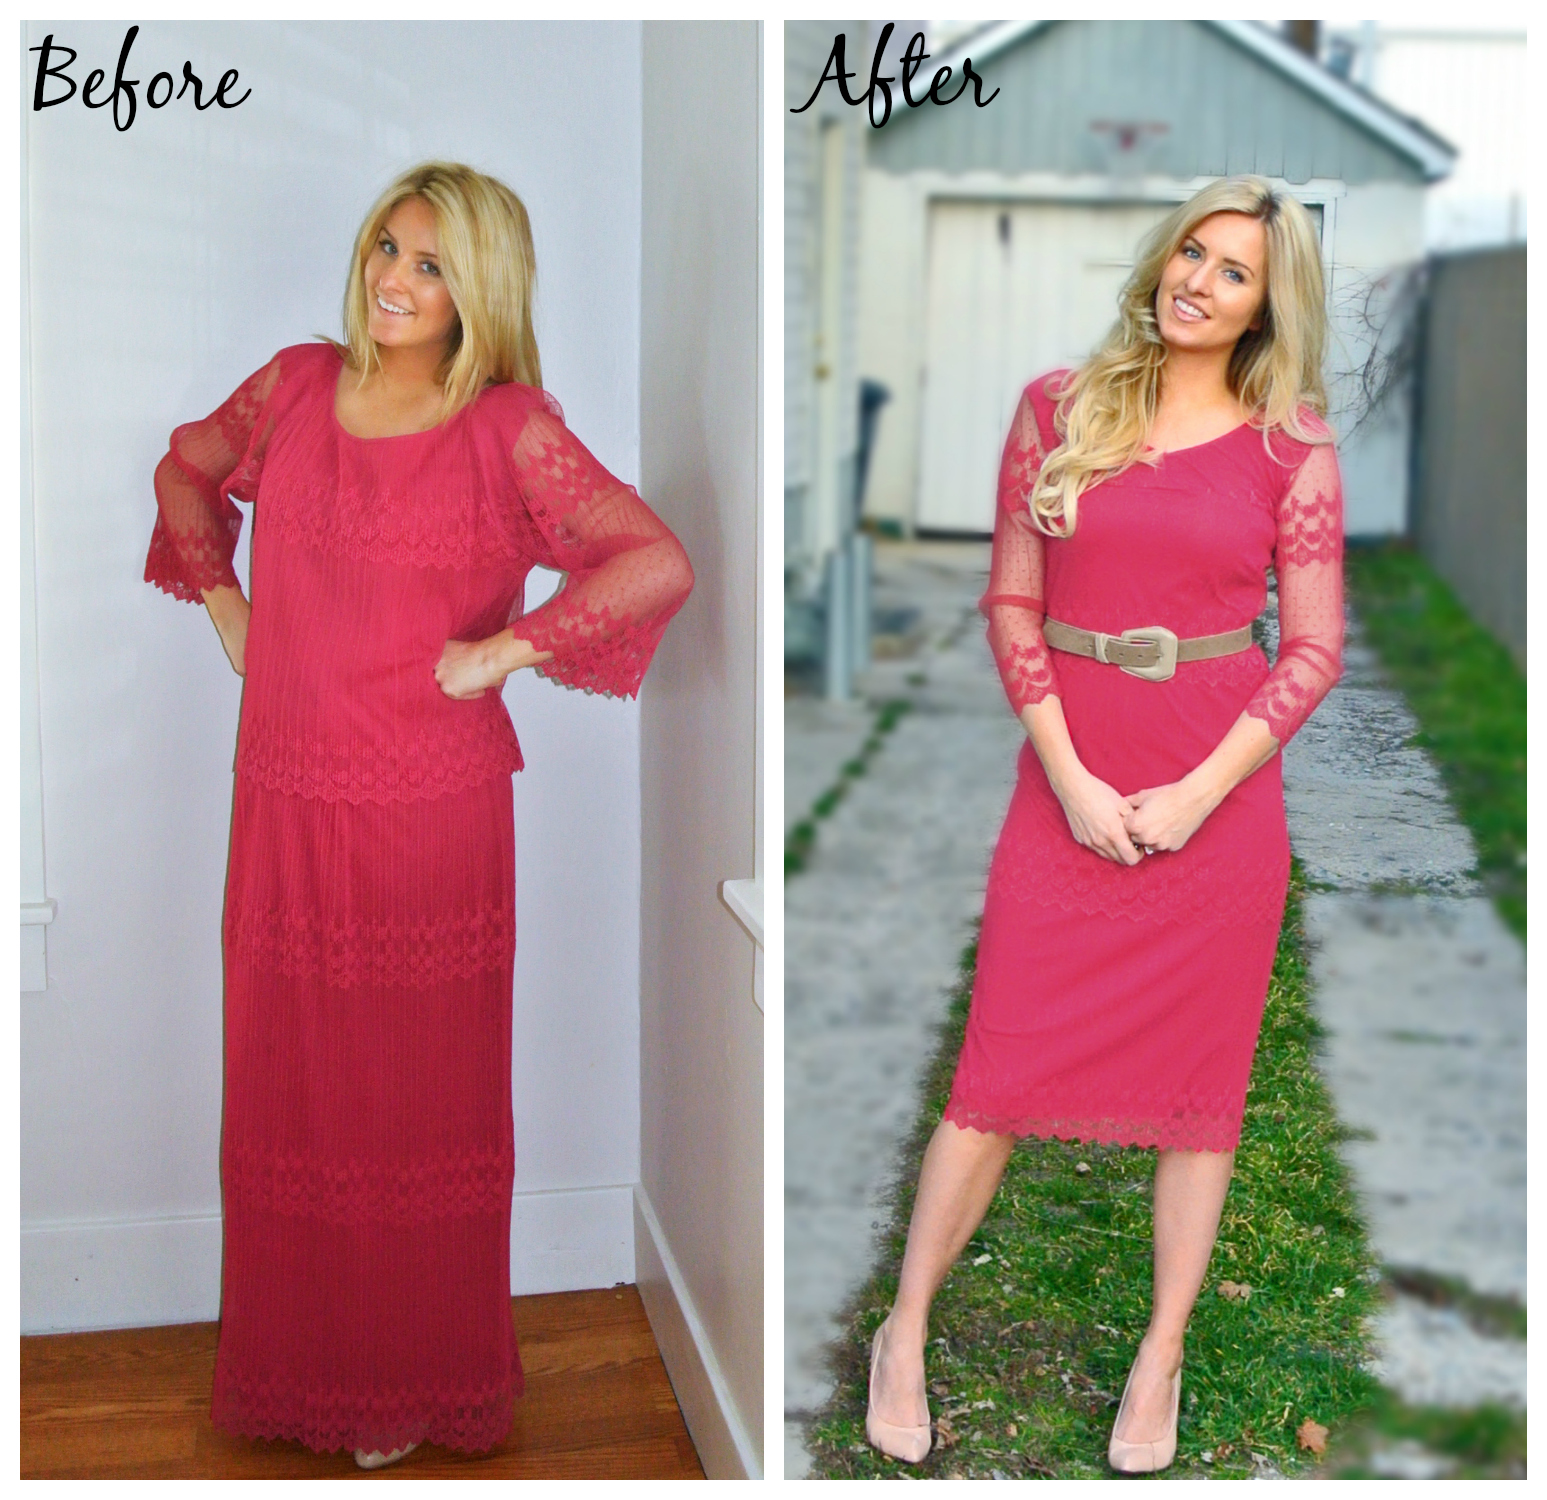 Lace Dress Refashion